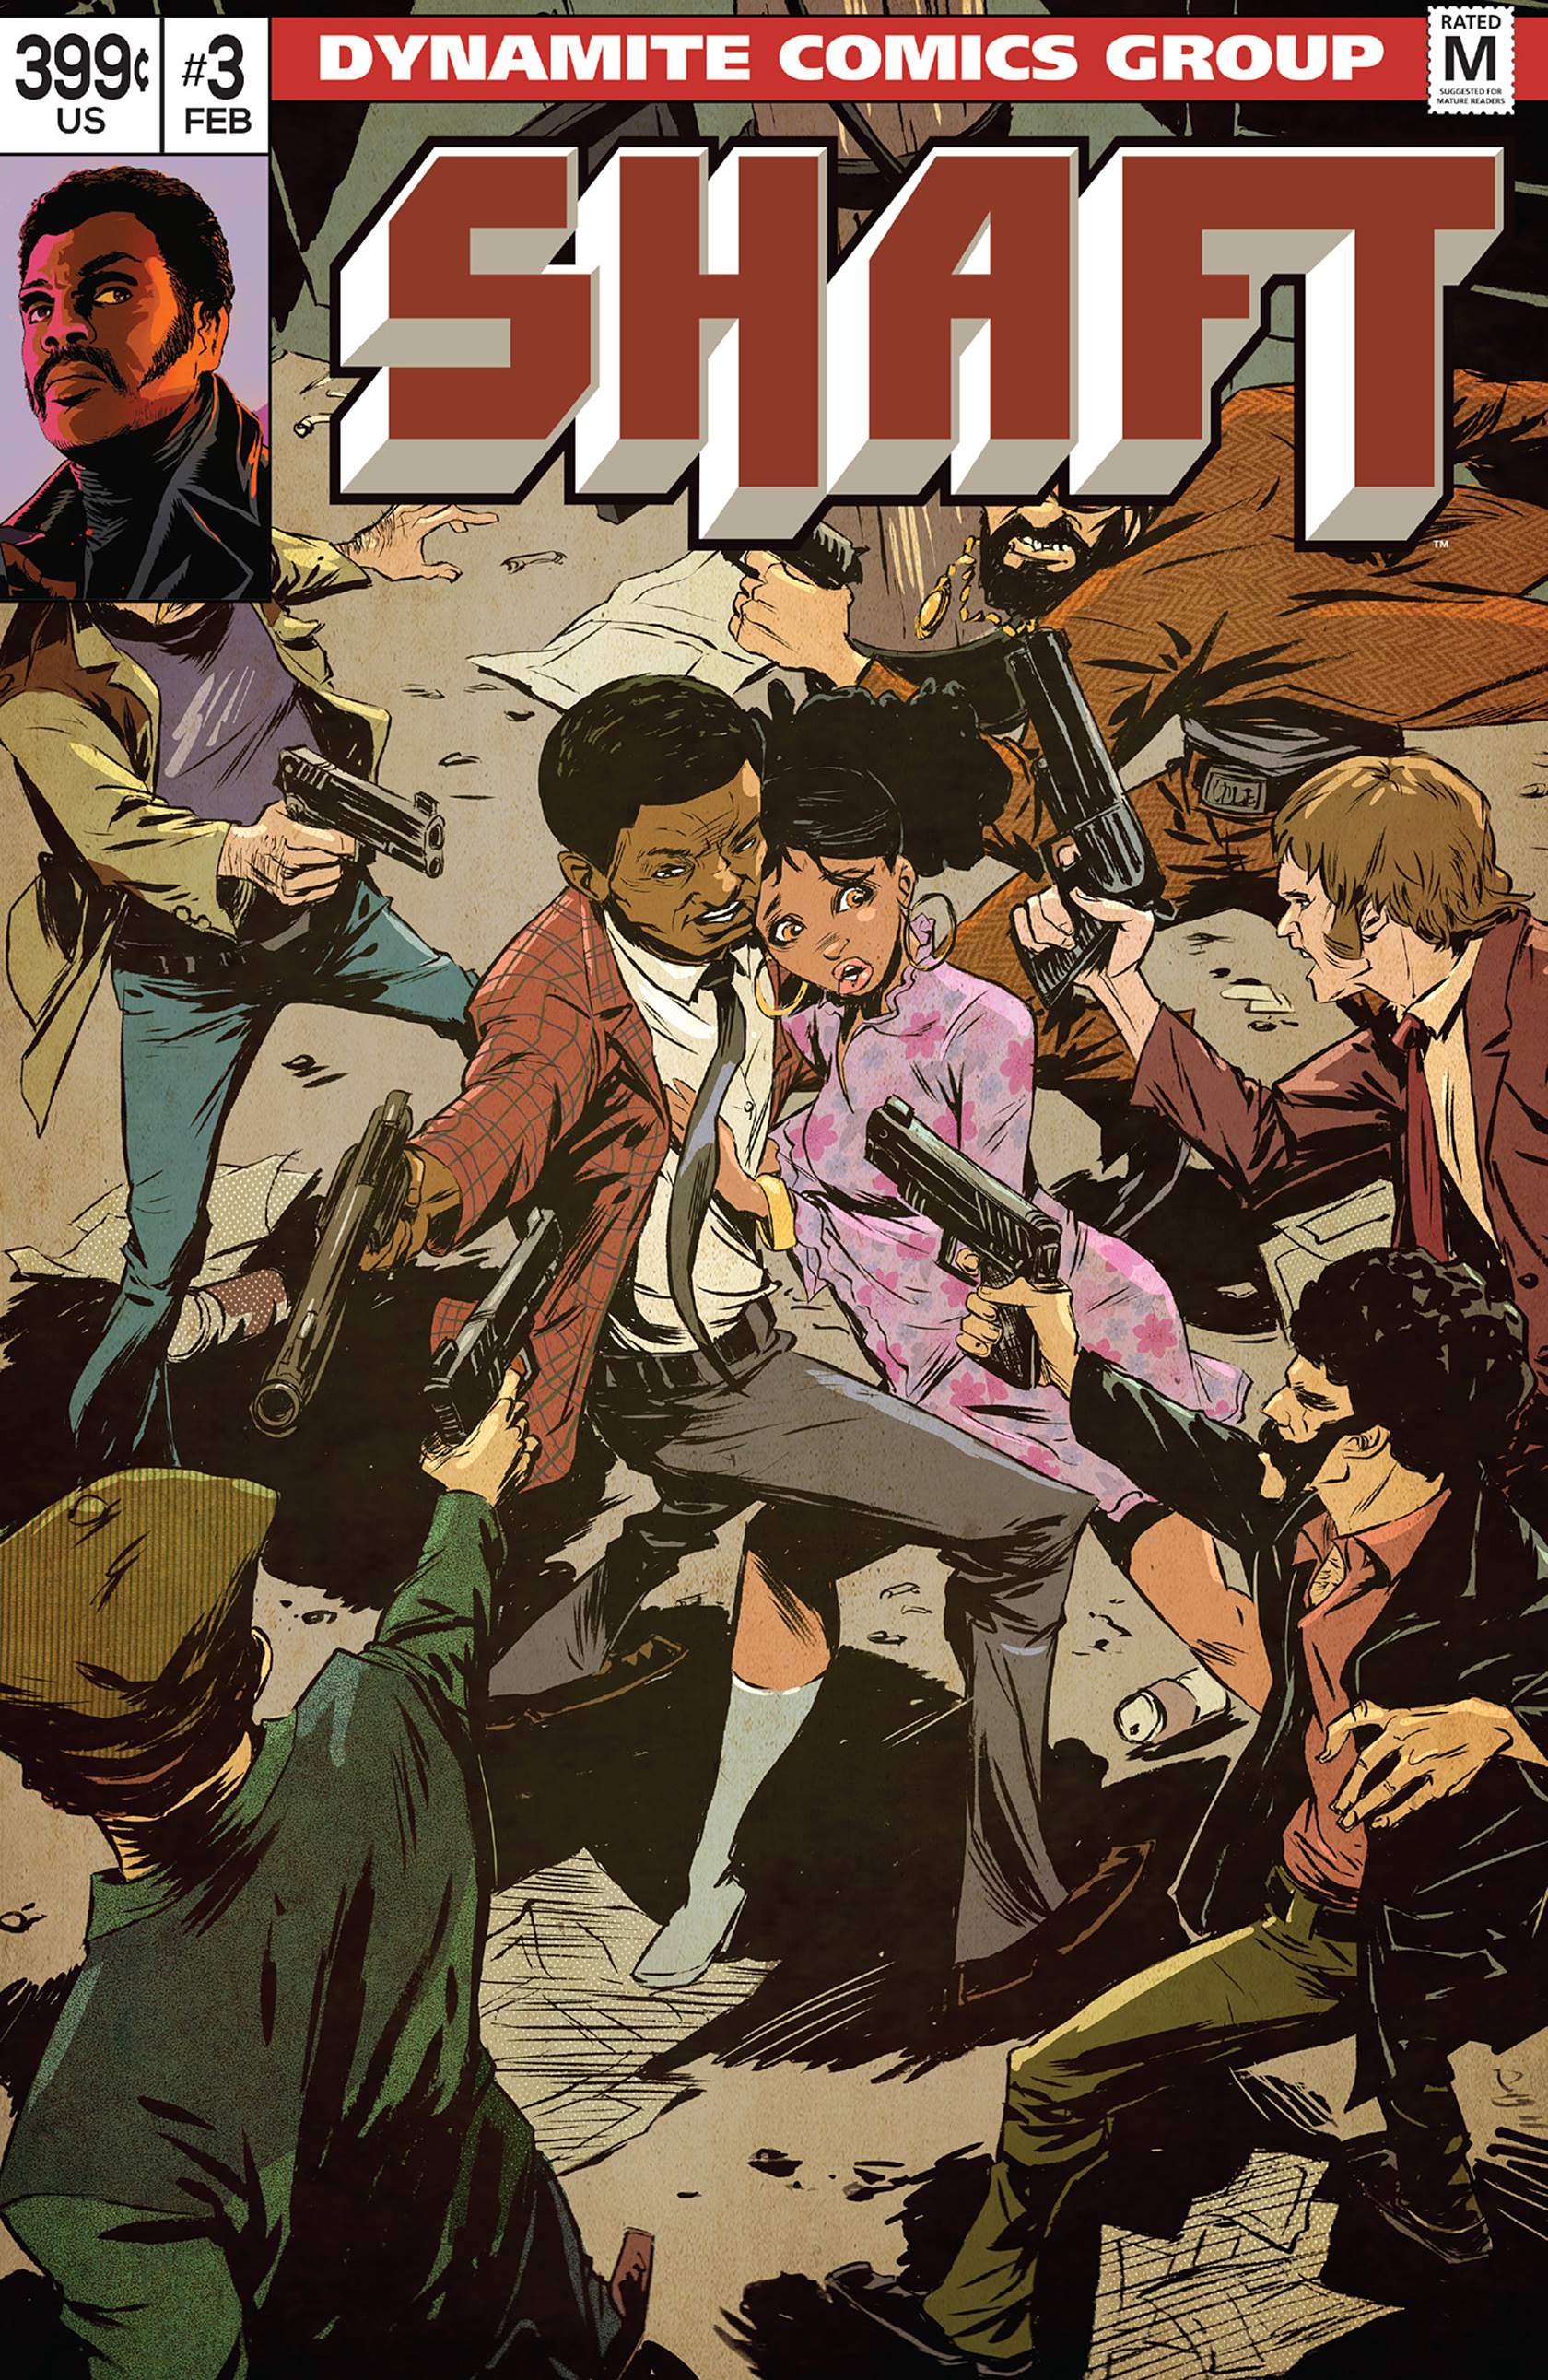 Read online Shaft comic -  Issue #3 - 3